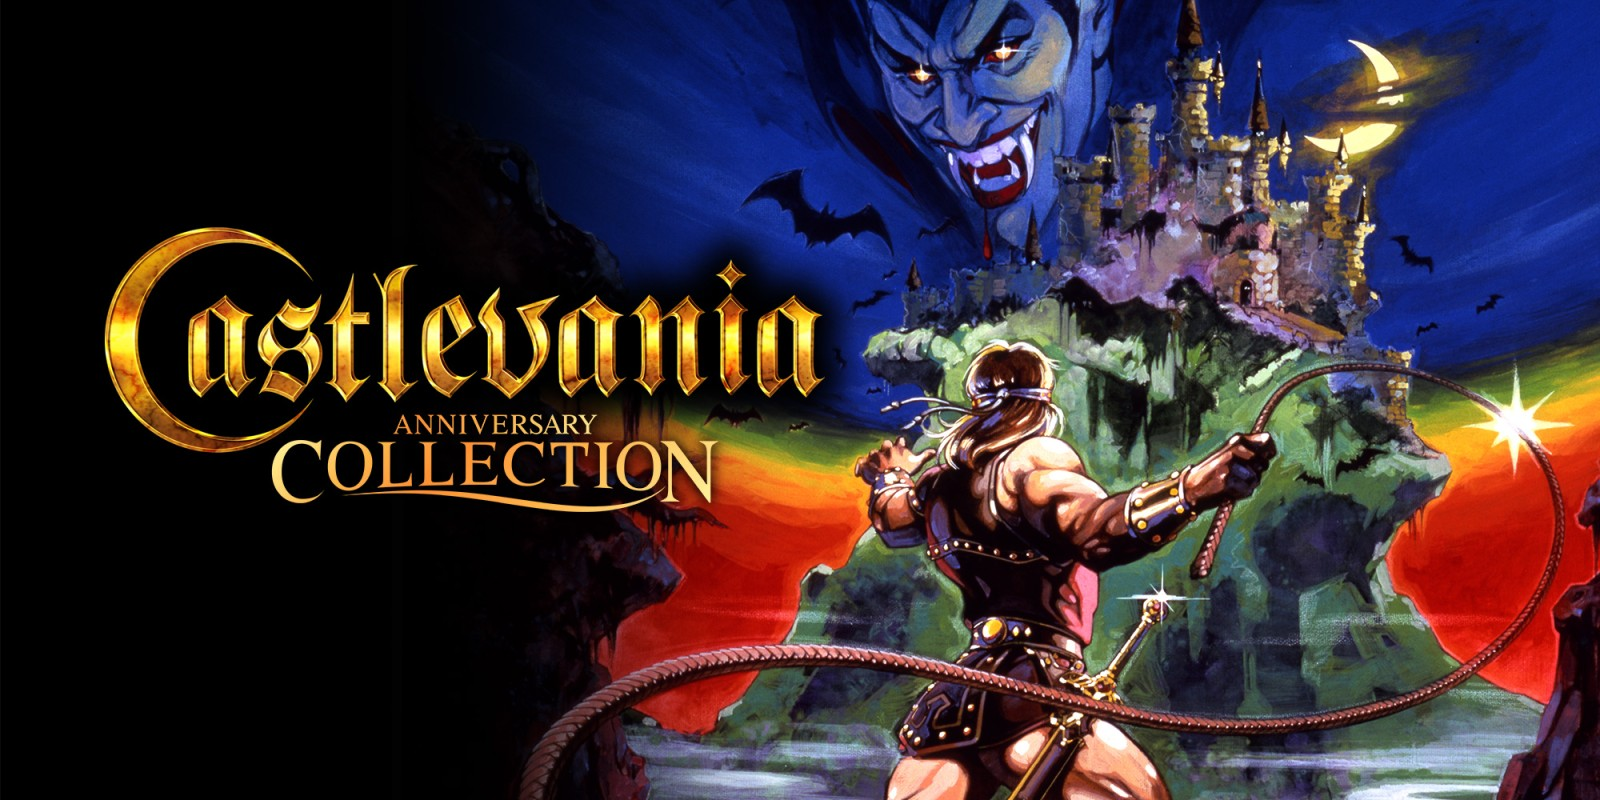 Castlevania: Advance Collection gets logo and will contain four games